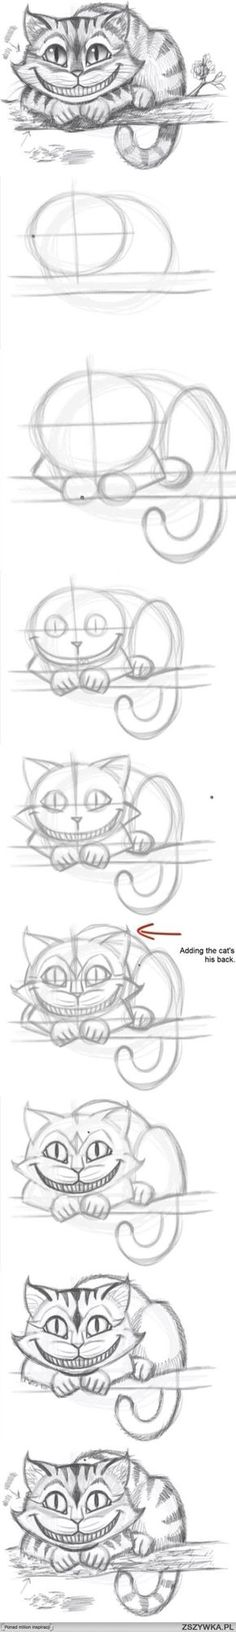 Cheshire Cat from Alice In Wonderland. How to draw the Cheshire Cat.